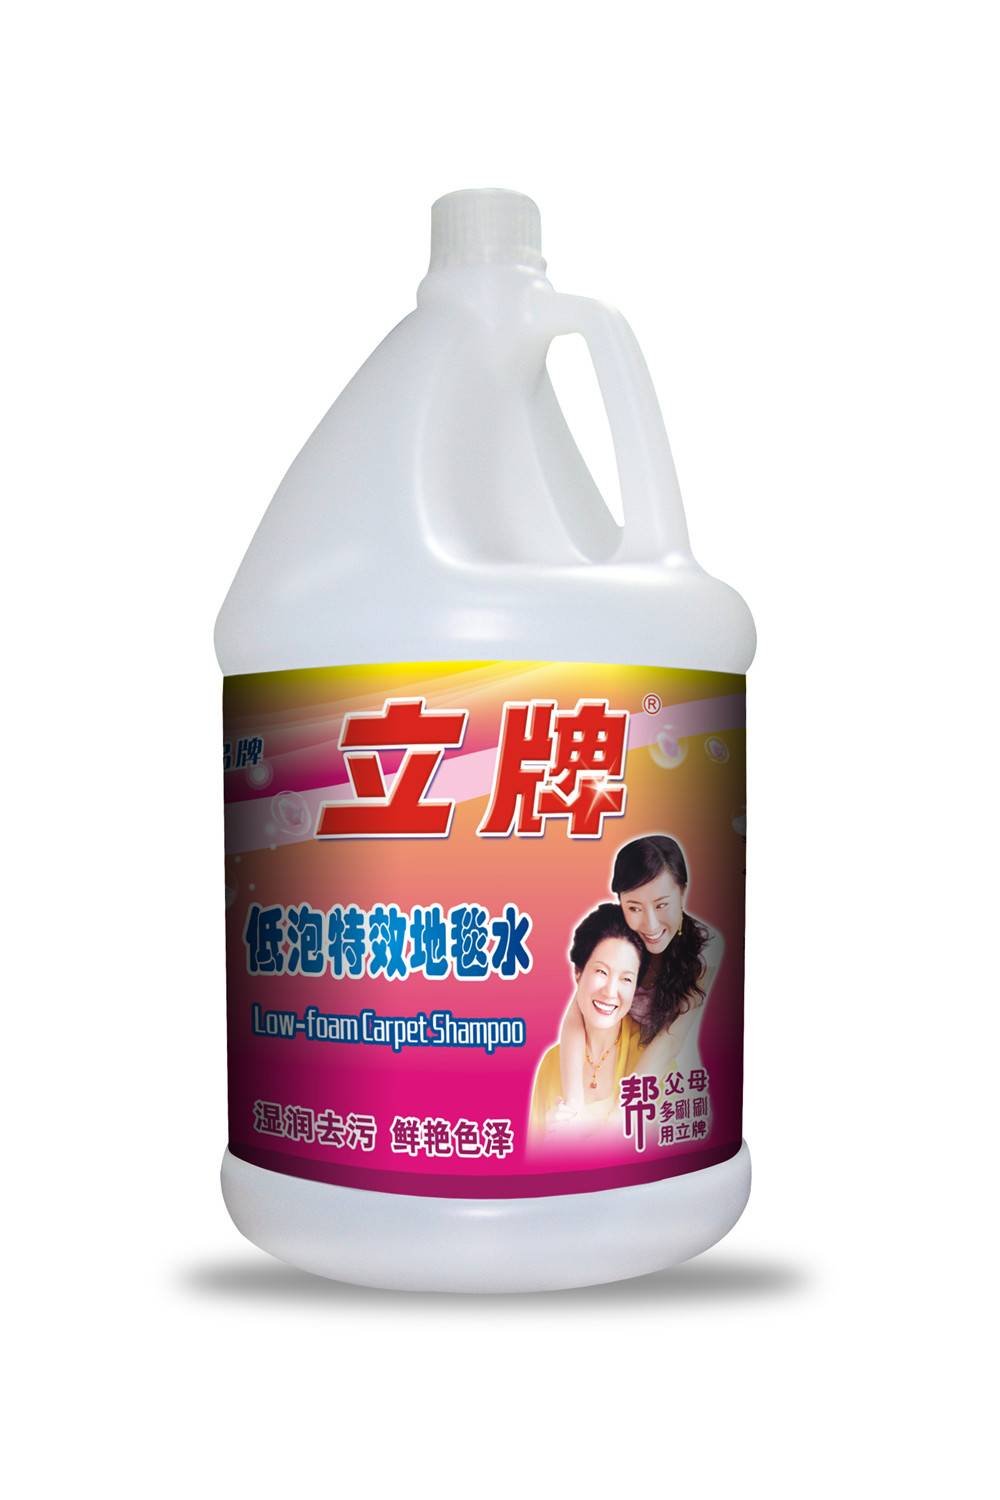 Low-foam Carpet Shampoo, 3.8kg, Accepted OEM Orders, Daily detergent